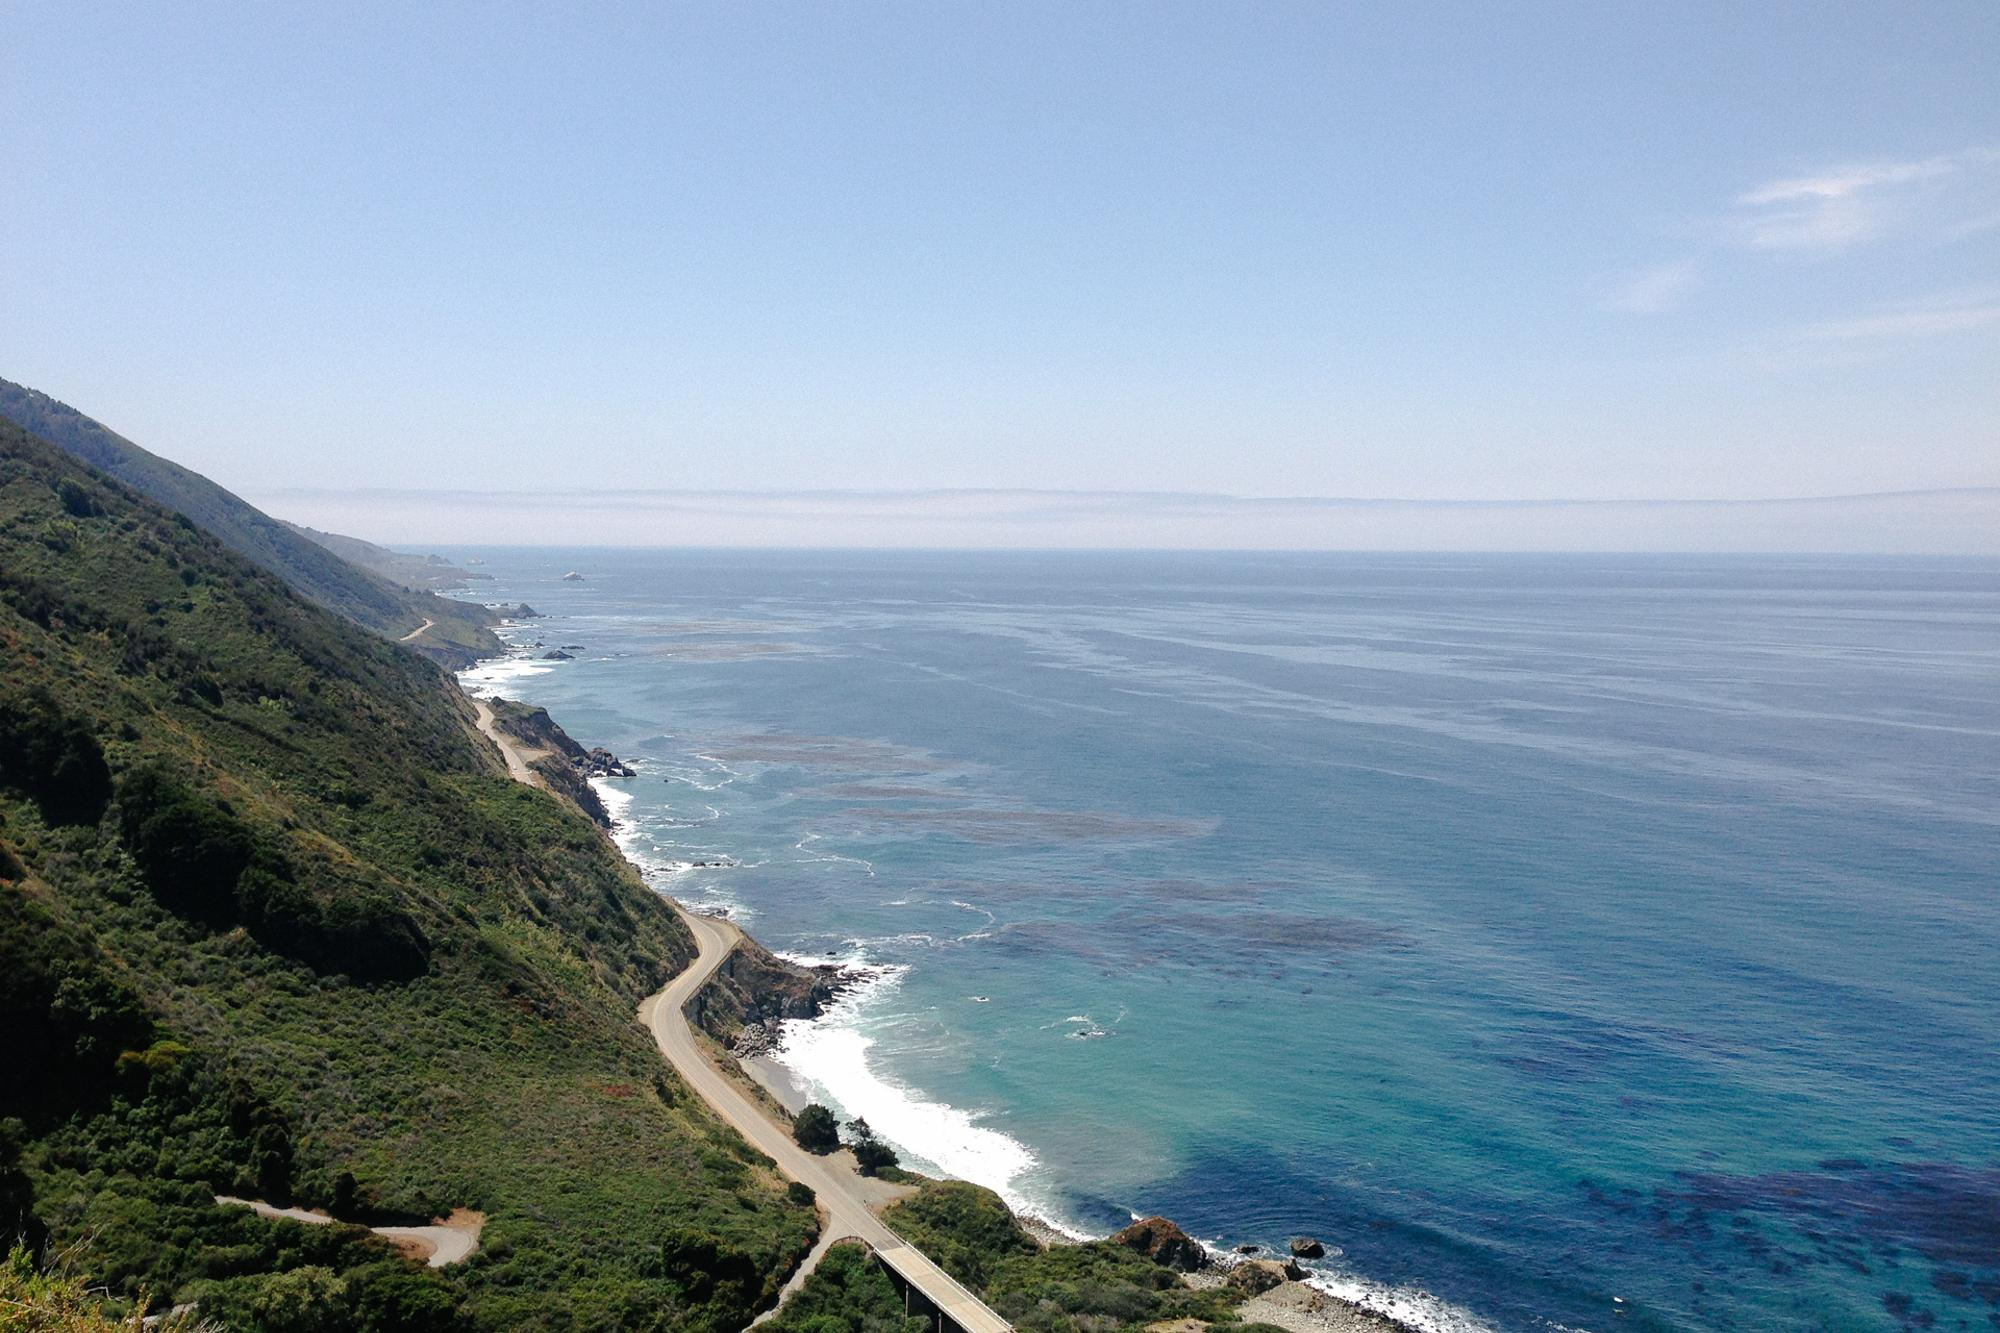 Highway 1 - Big Sur, CA